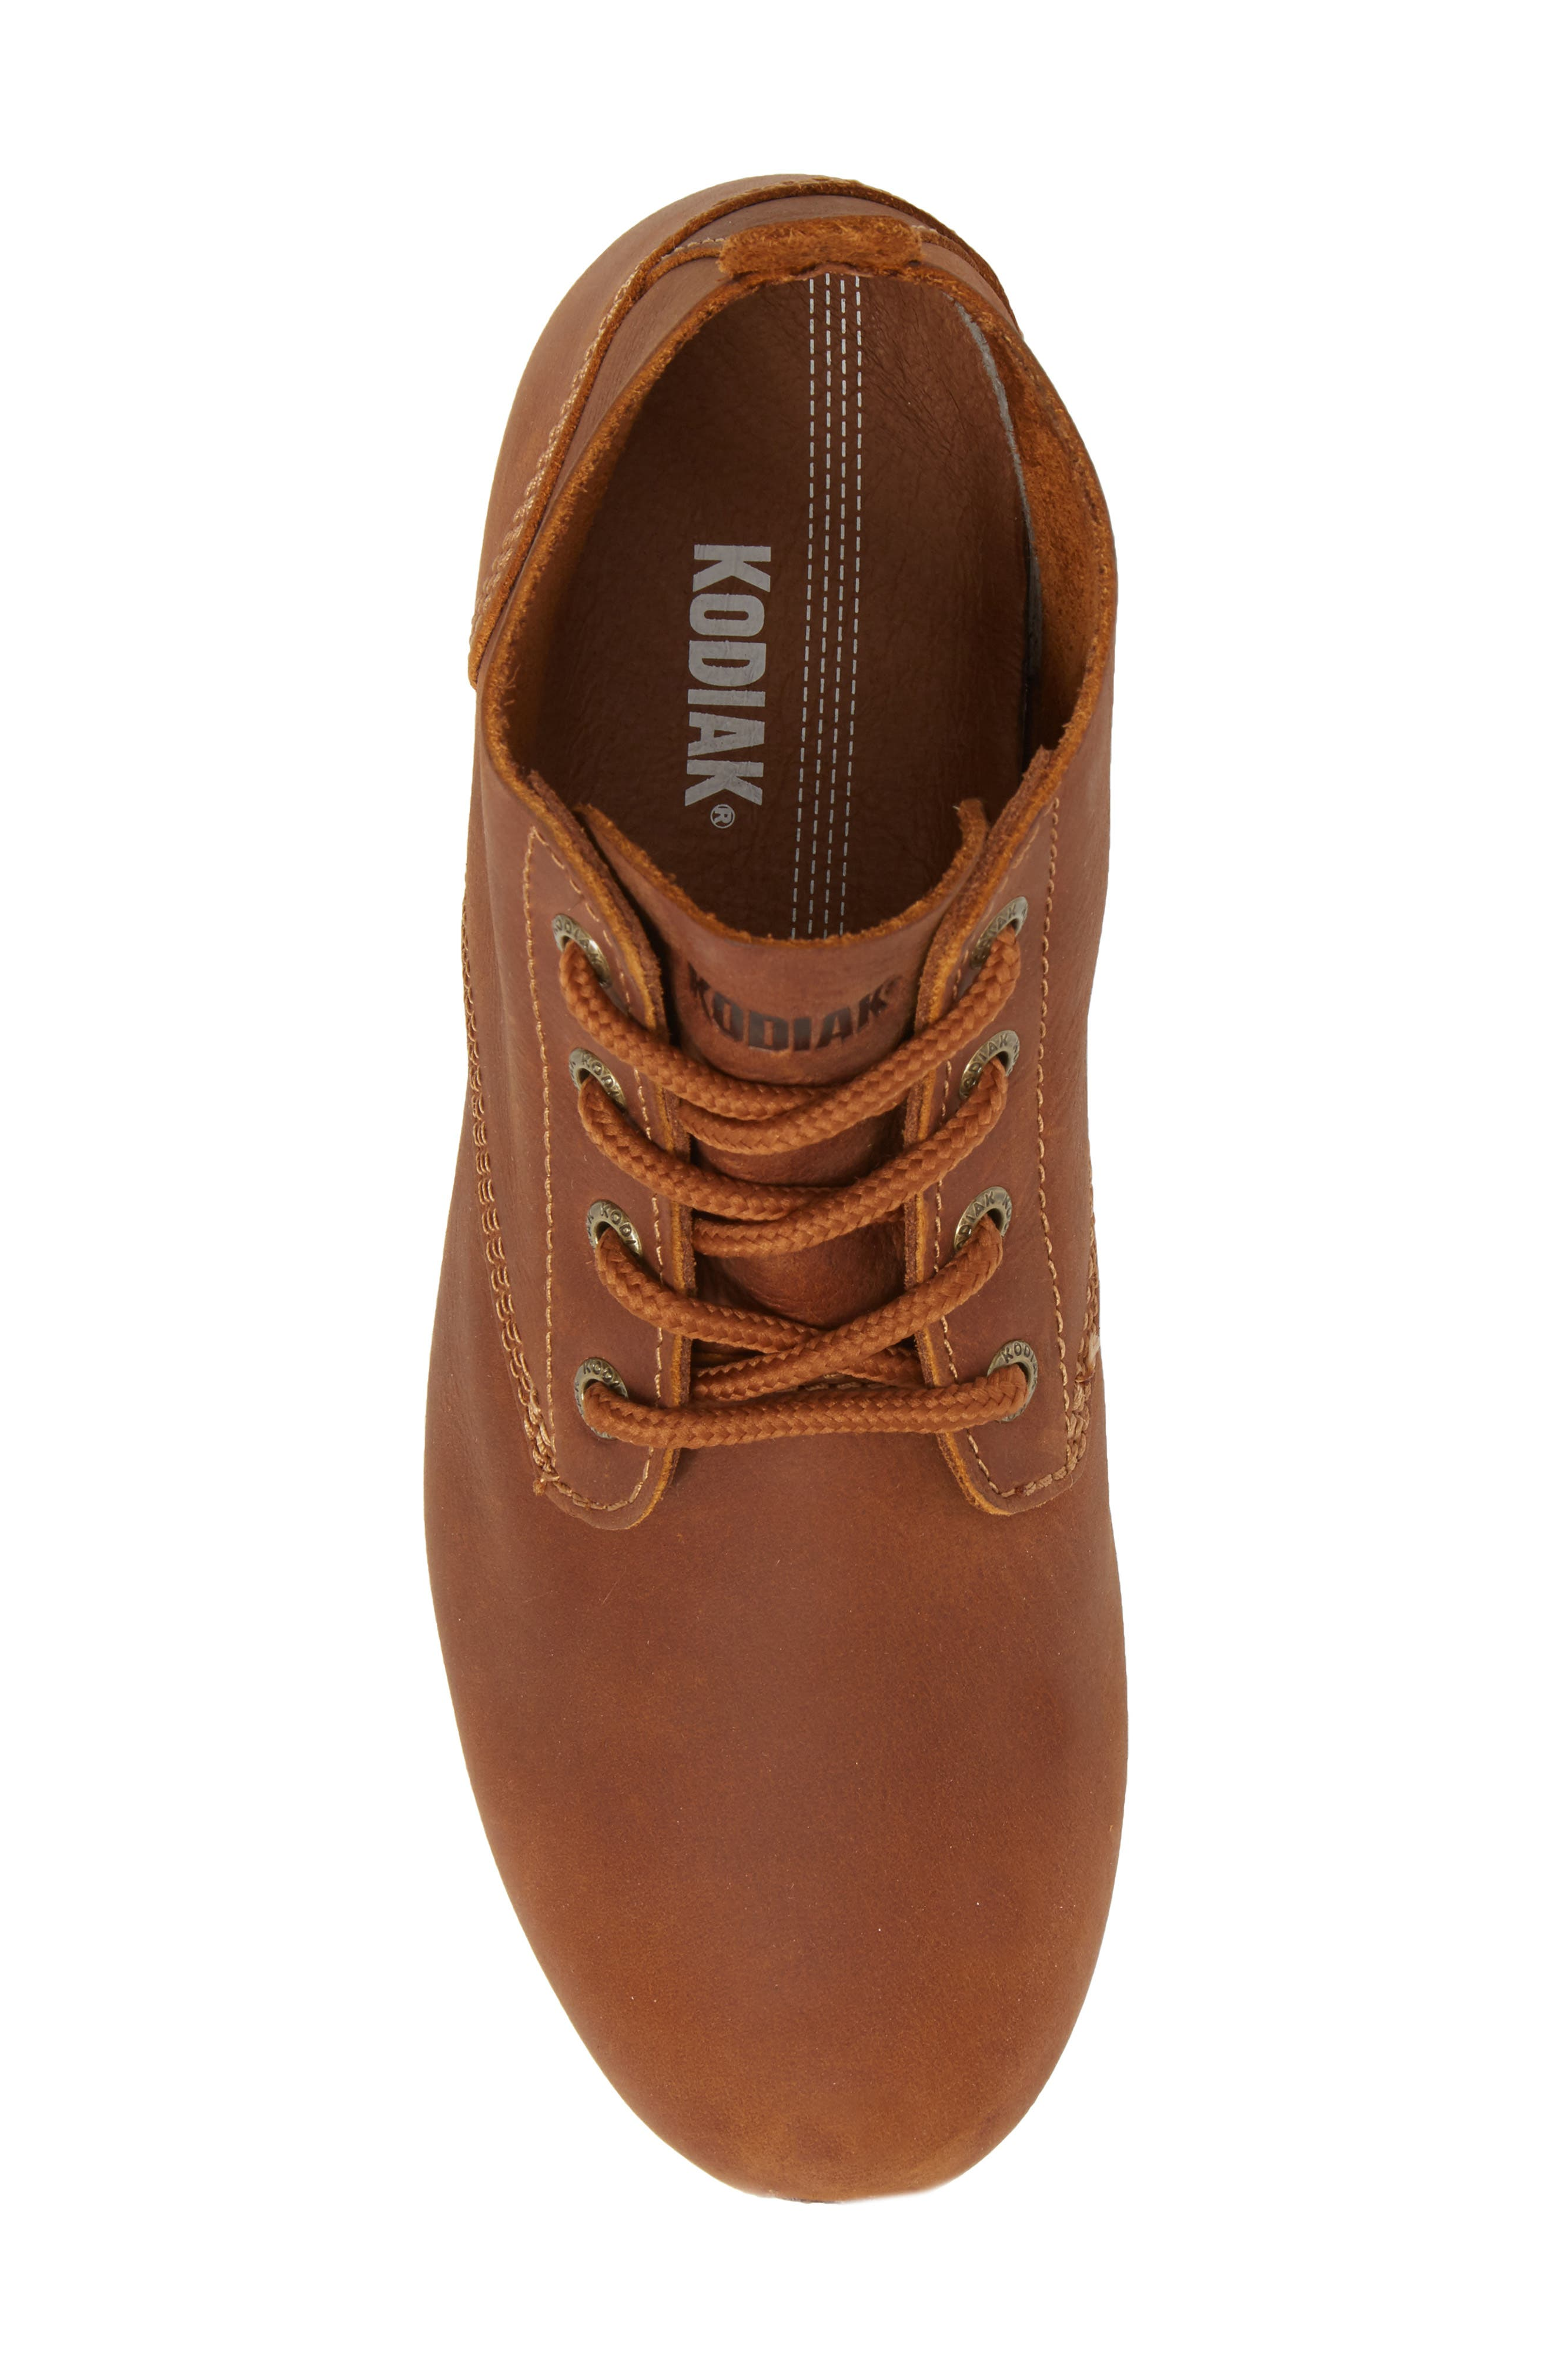 Chukka Boot,                             Alternate thumbnail 5, color,                             Peanut Leather